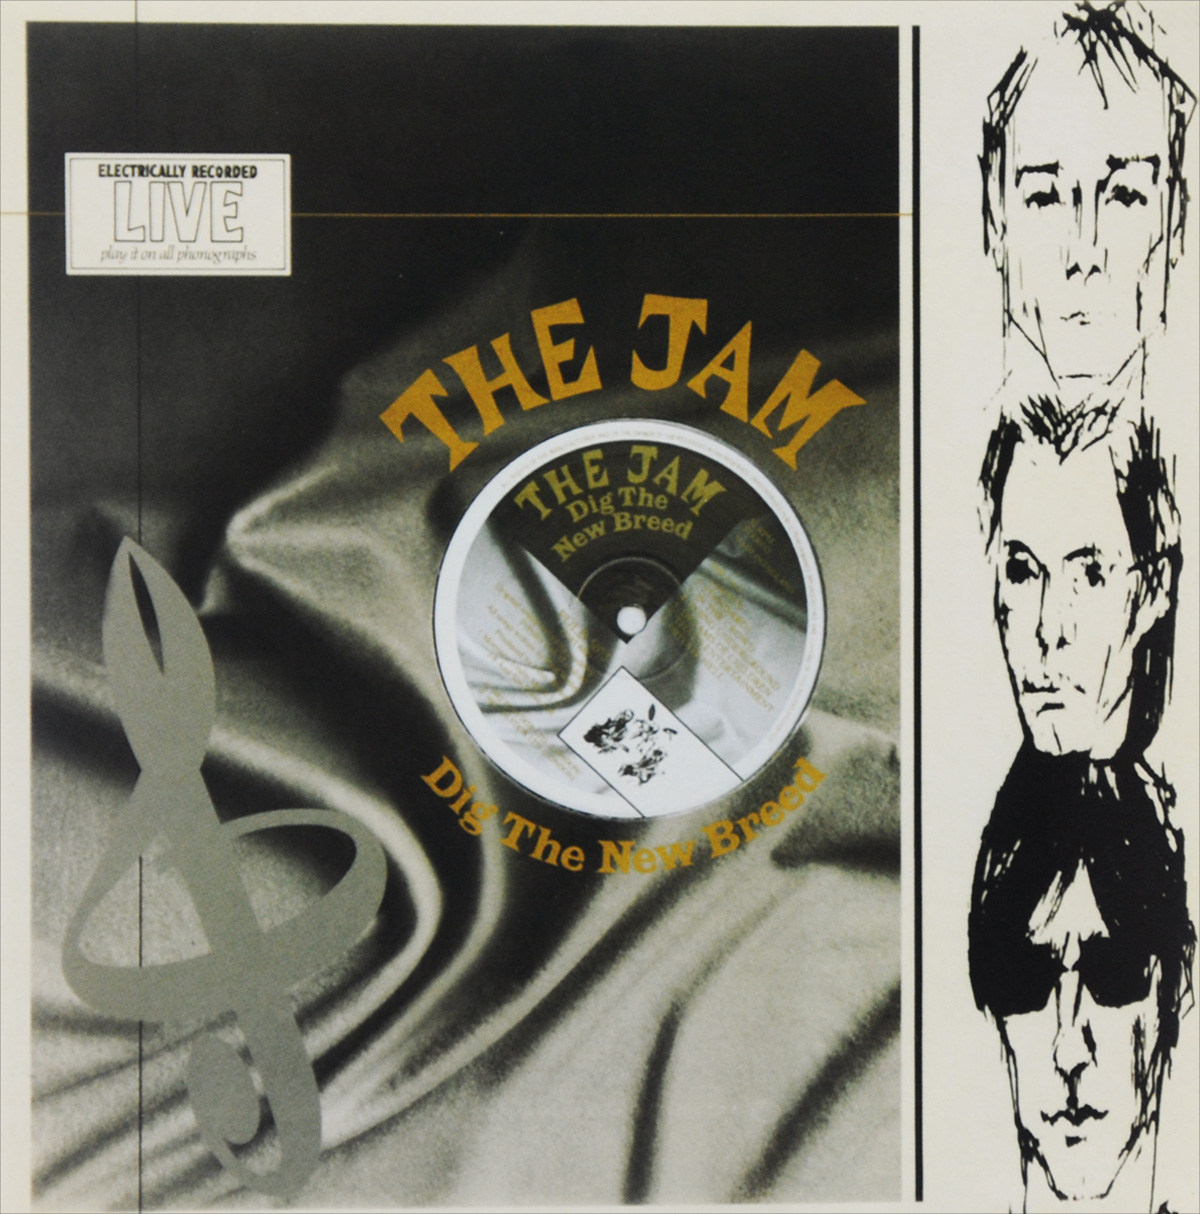 The Jam The Jam. Dig The New Breed jam jam this is the modern world